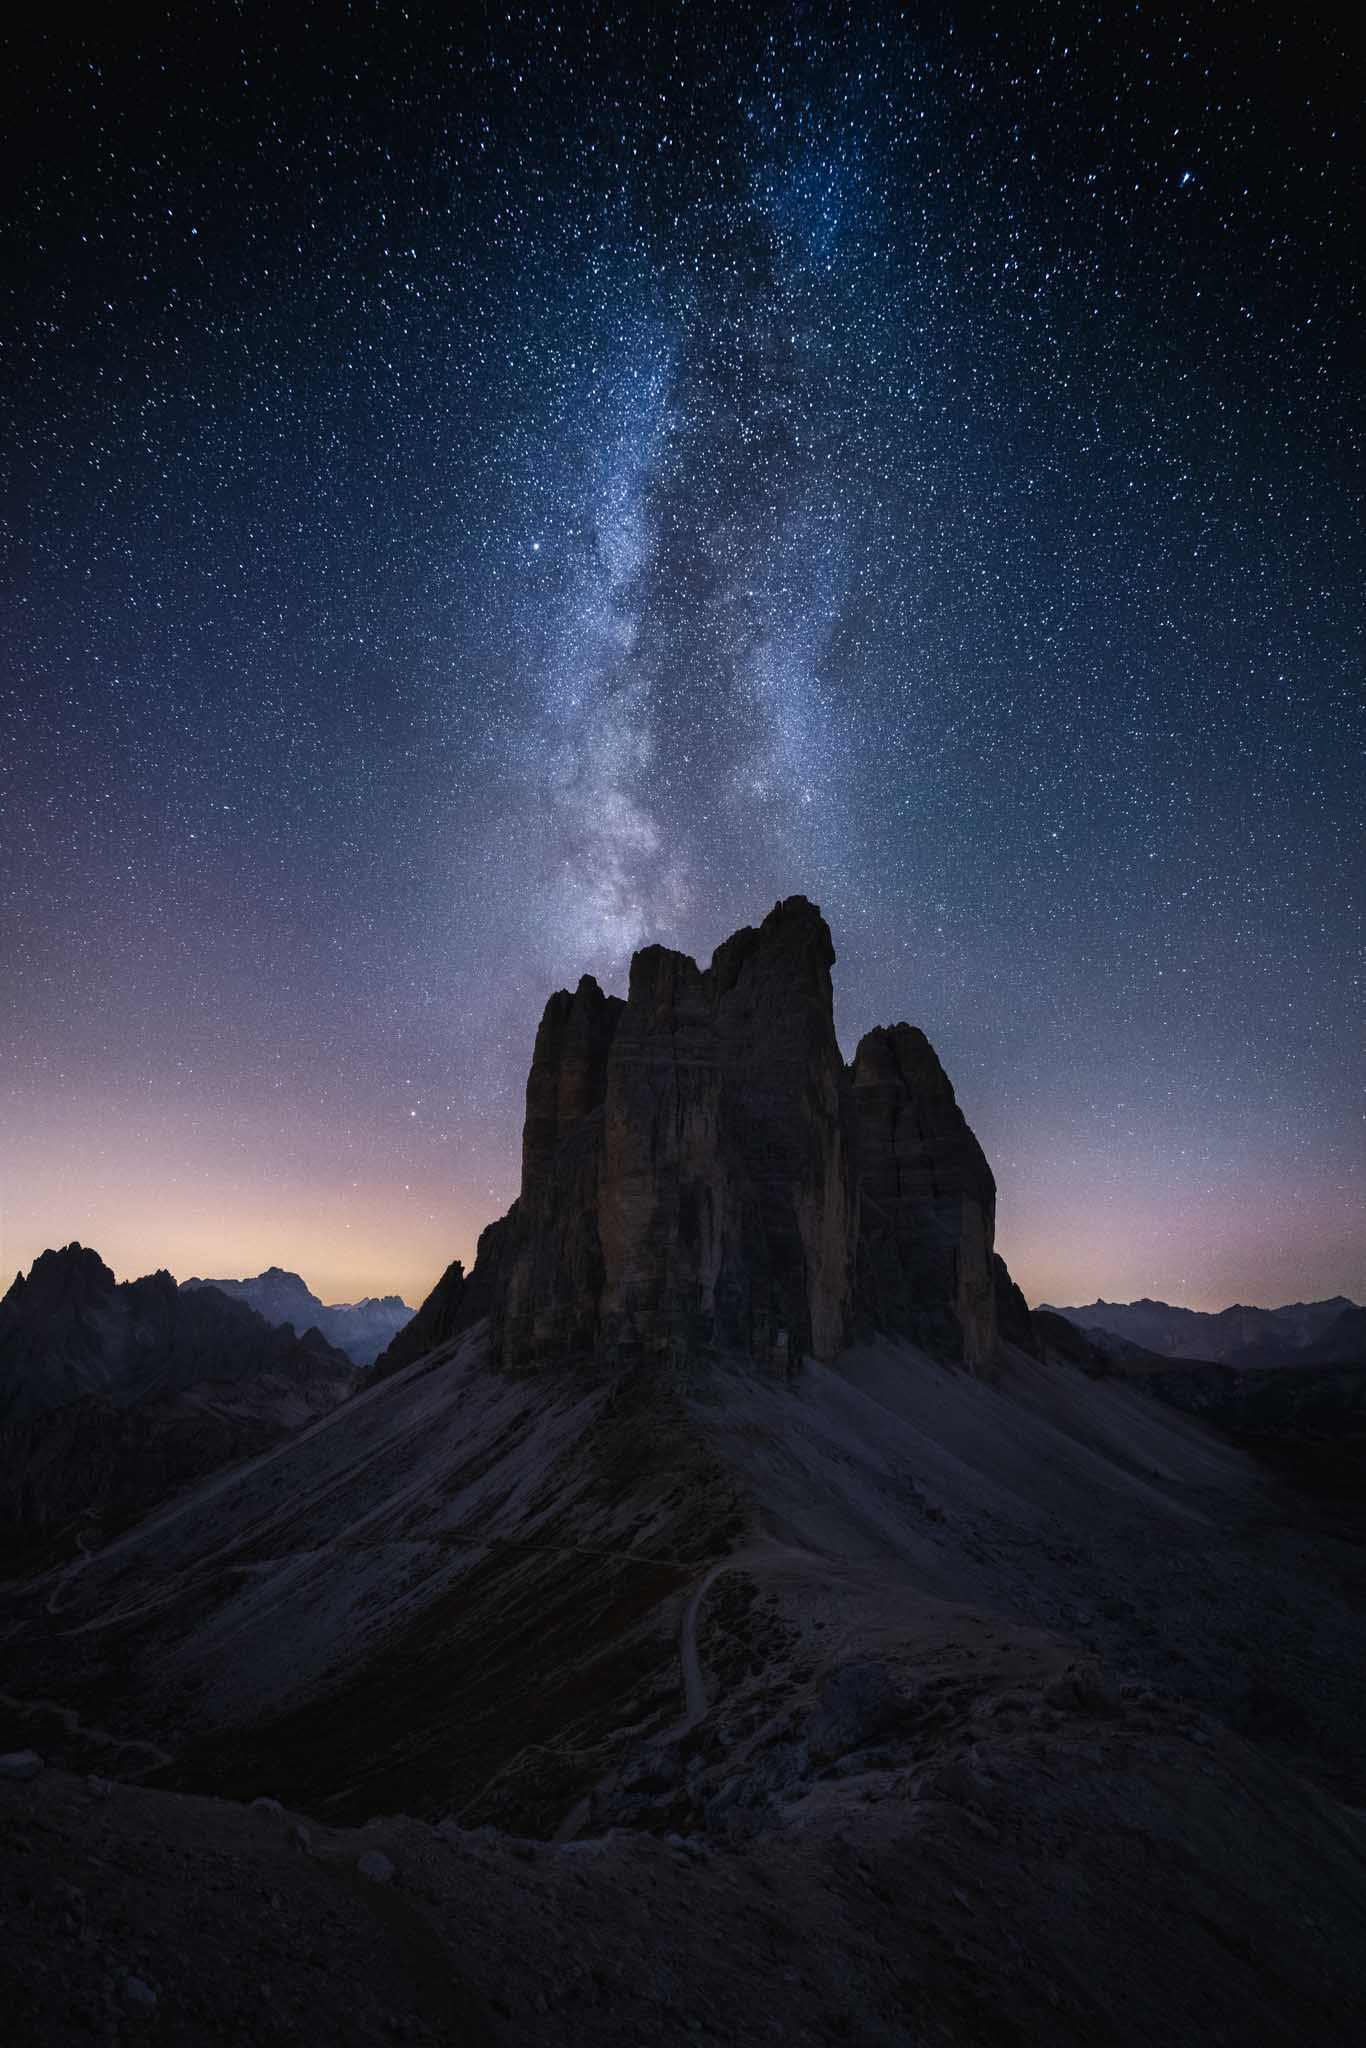 Starry sky at Tre Cime di Lavaredo in Autumn